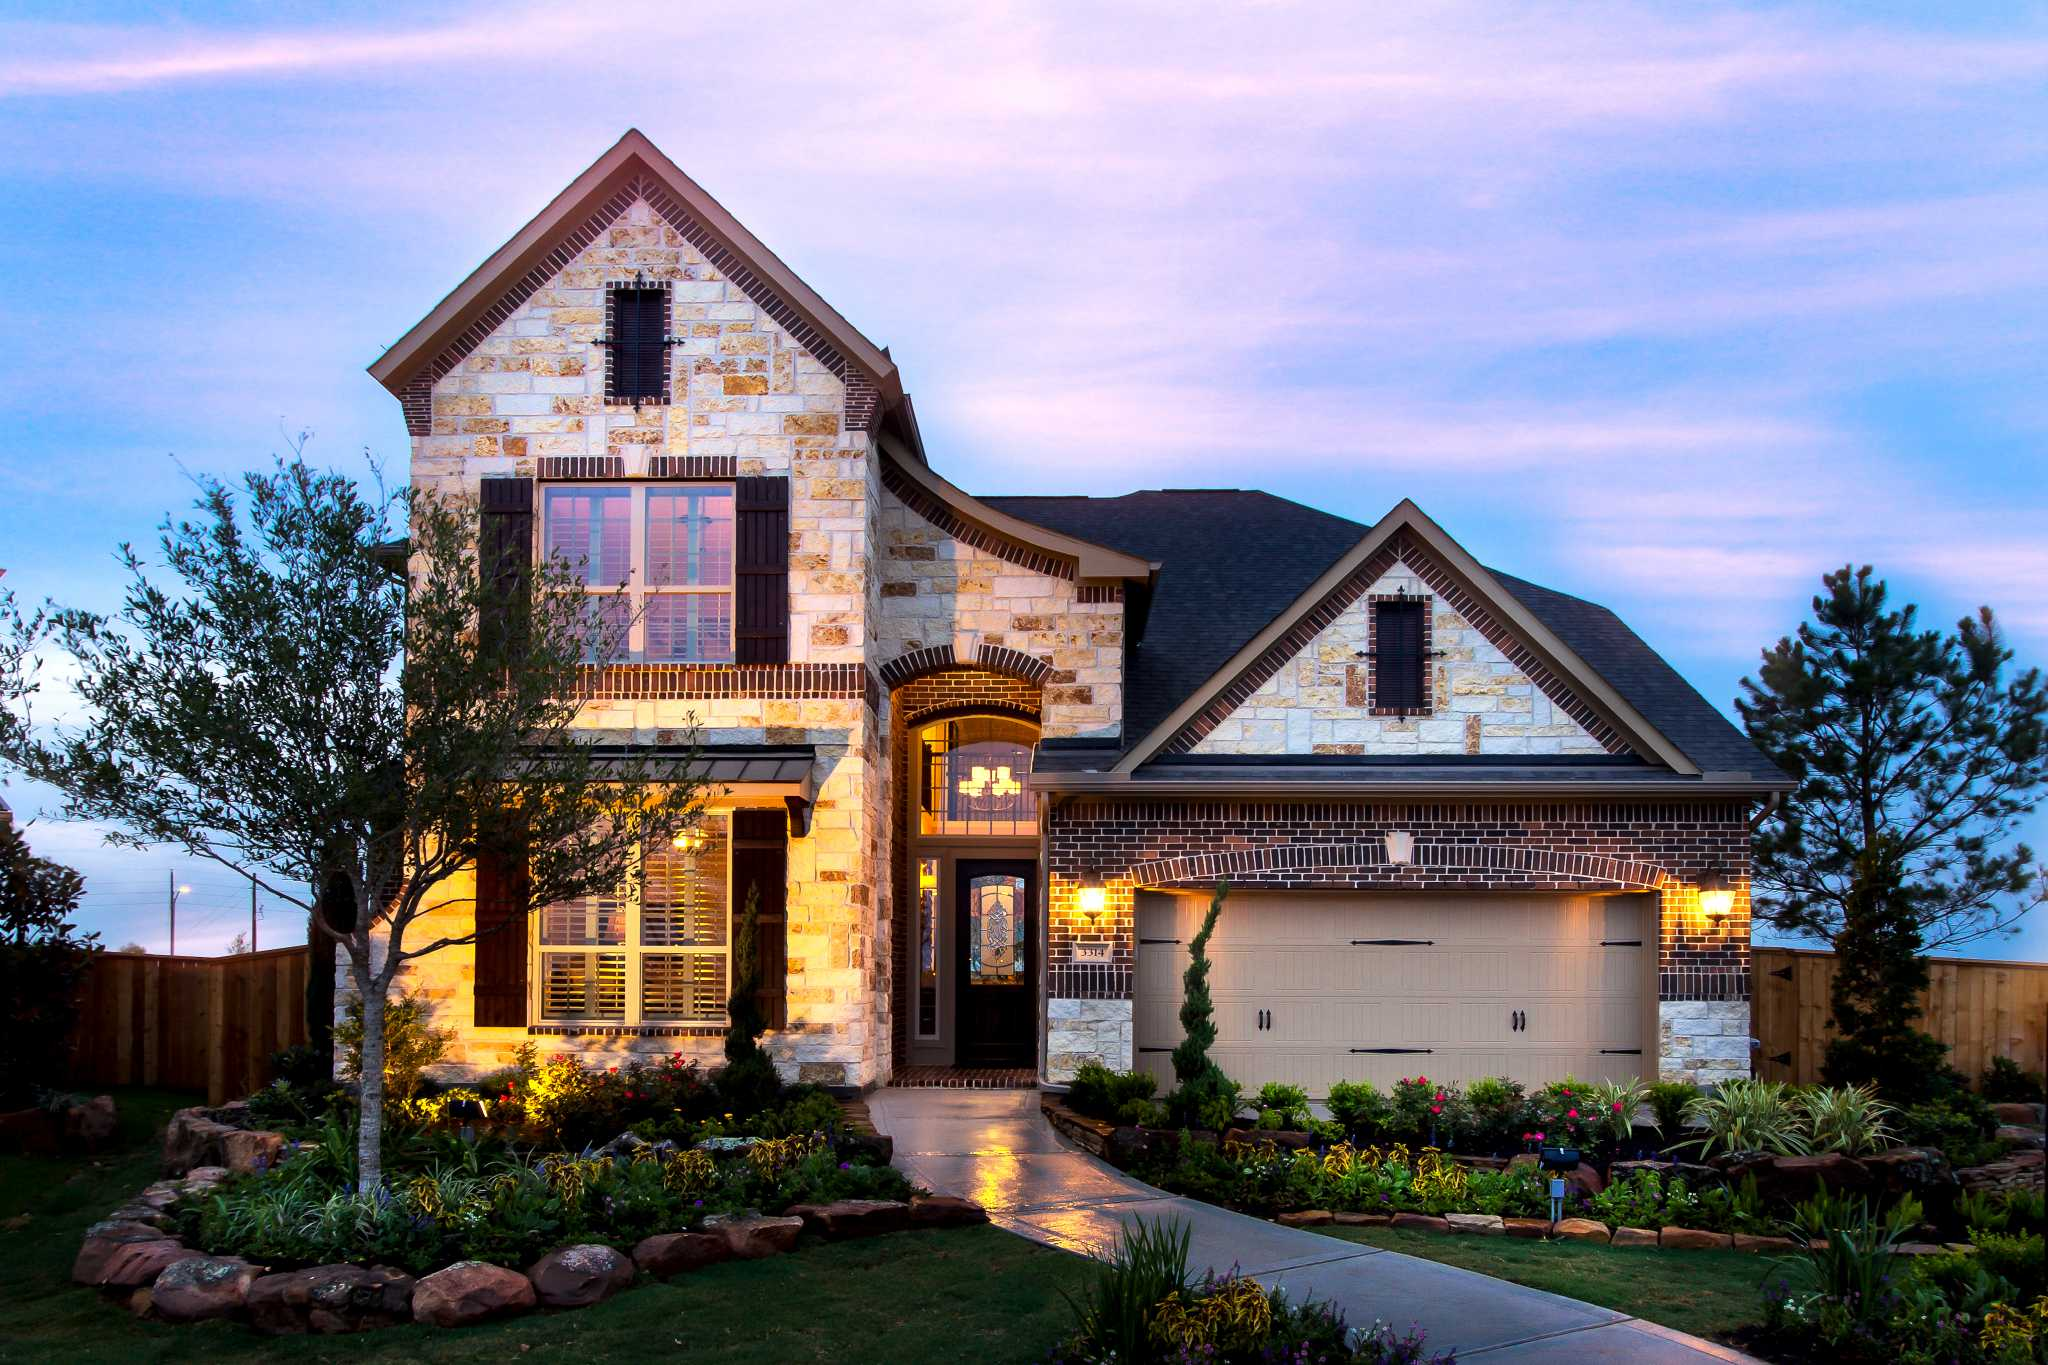 Cinco Ranch offers new homes from $350 000s by Ryland Trendmaker